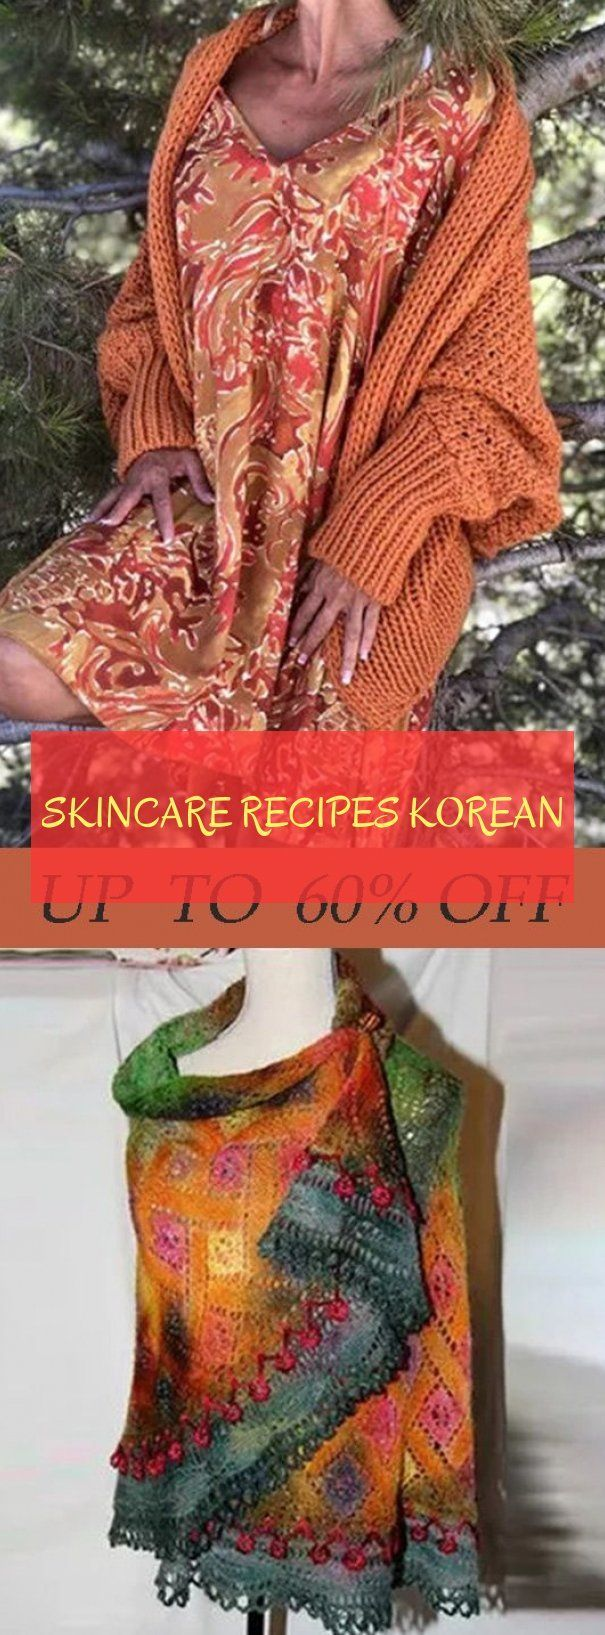 skincare recipes Korean - skincare recipes korean  -  Hautpflege-Rezepte